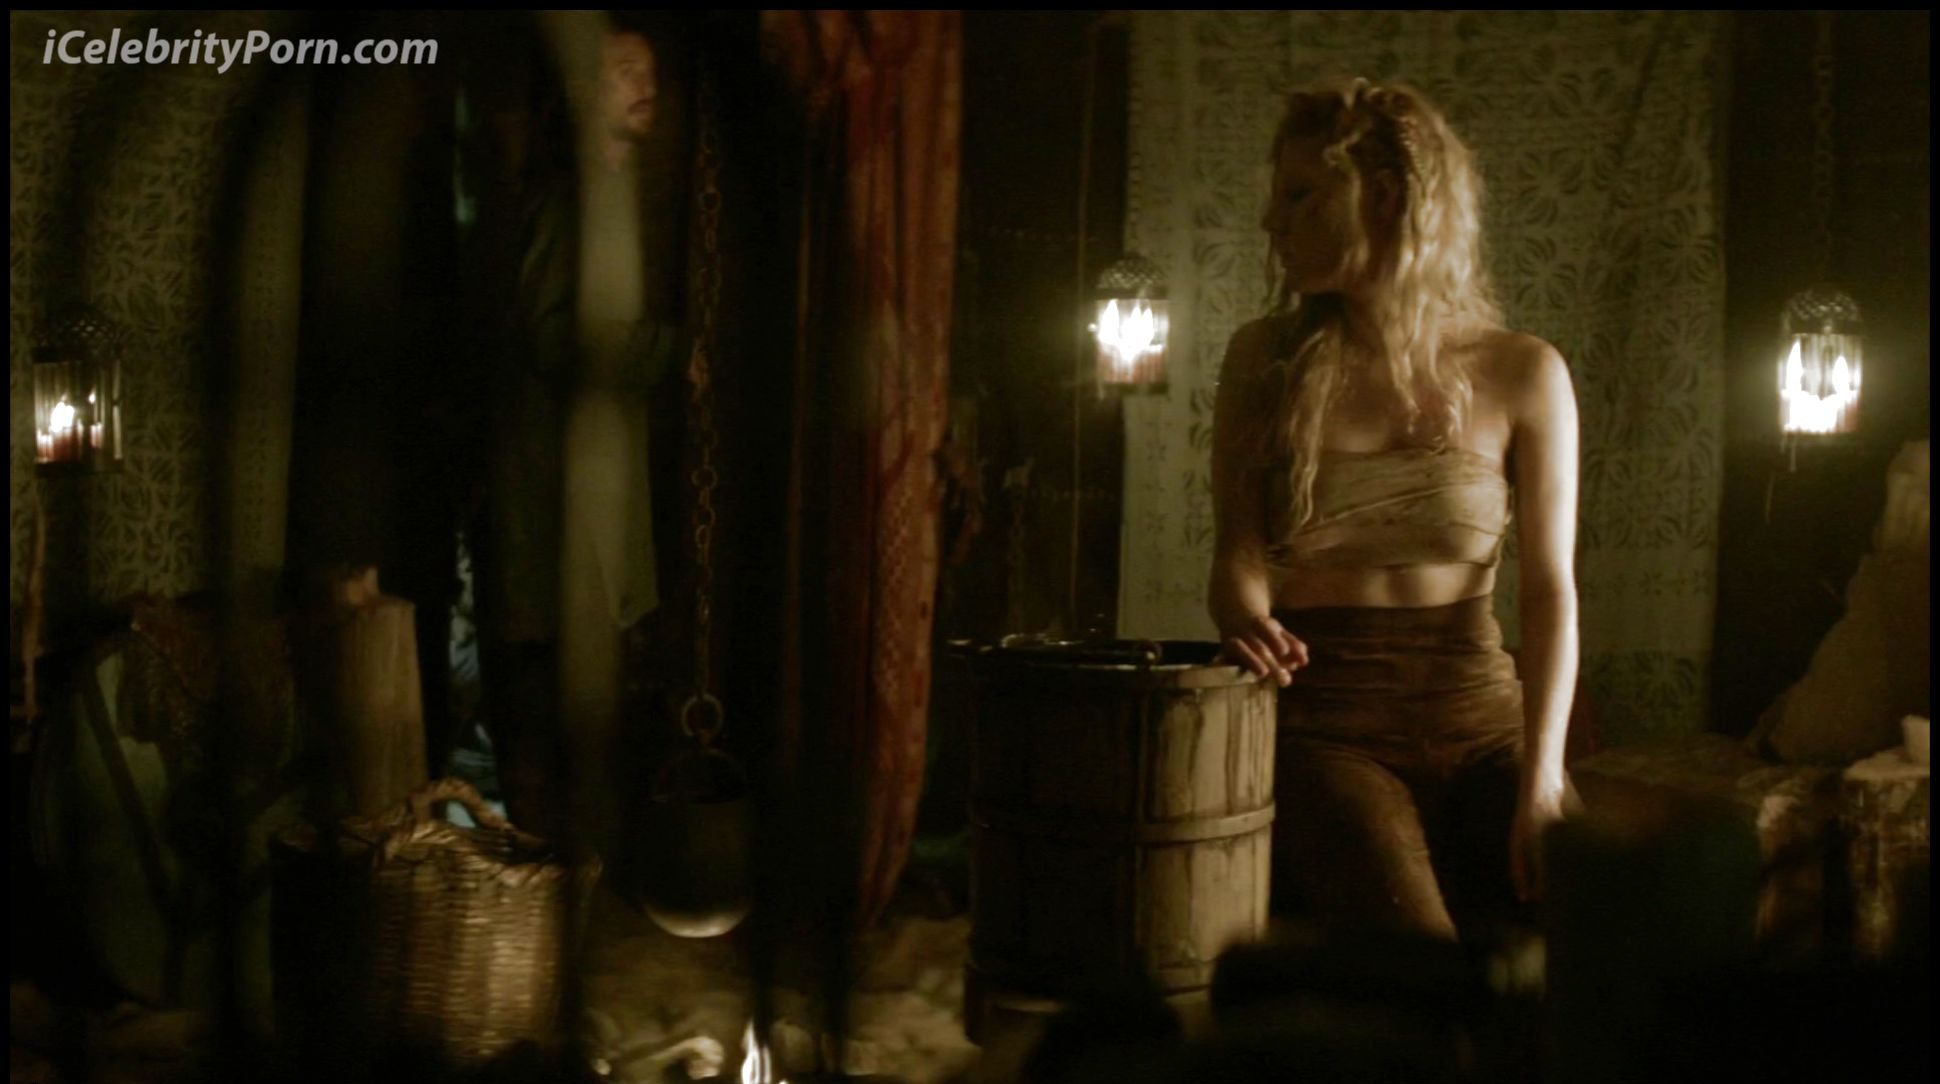 Something is. Vikings tv show nude scene apologise